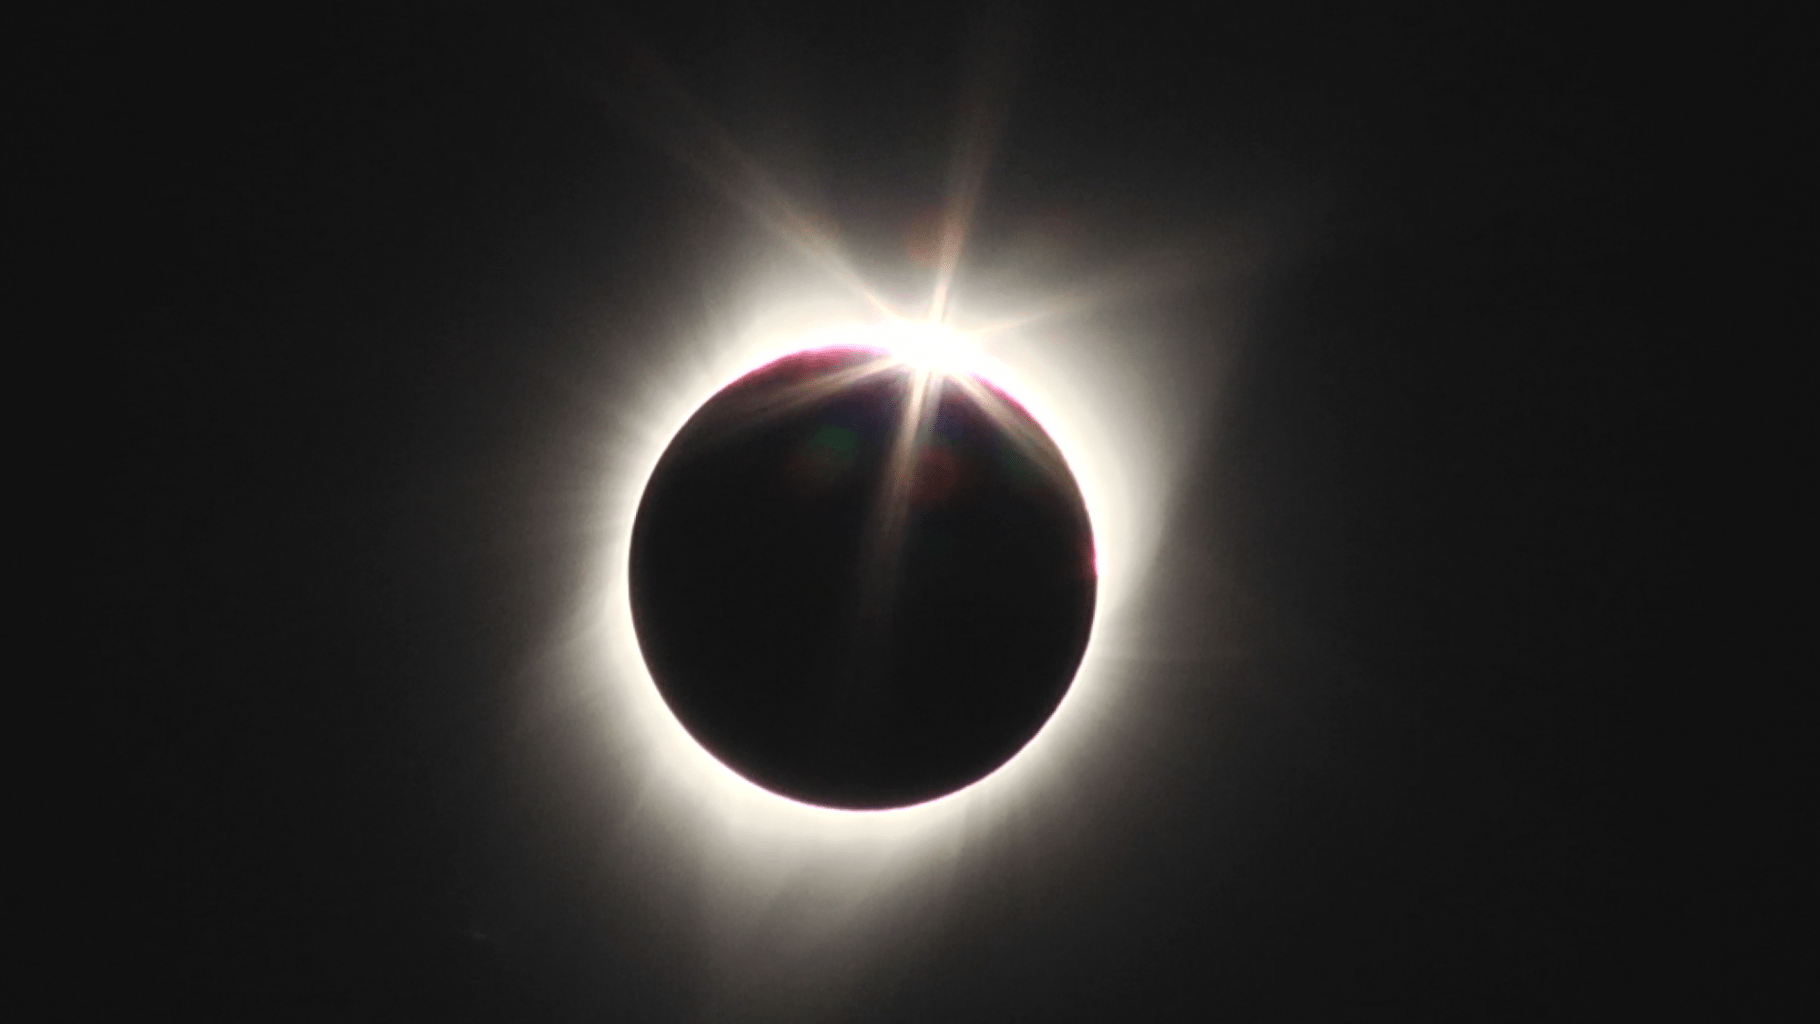 Image: the diamond ring effect on the sun caused by a full solar ecipse